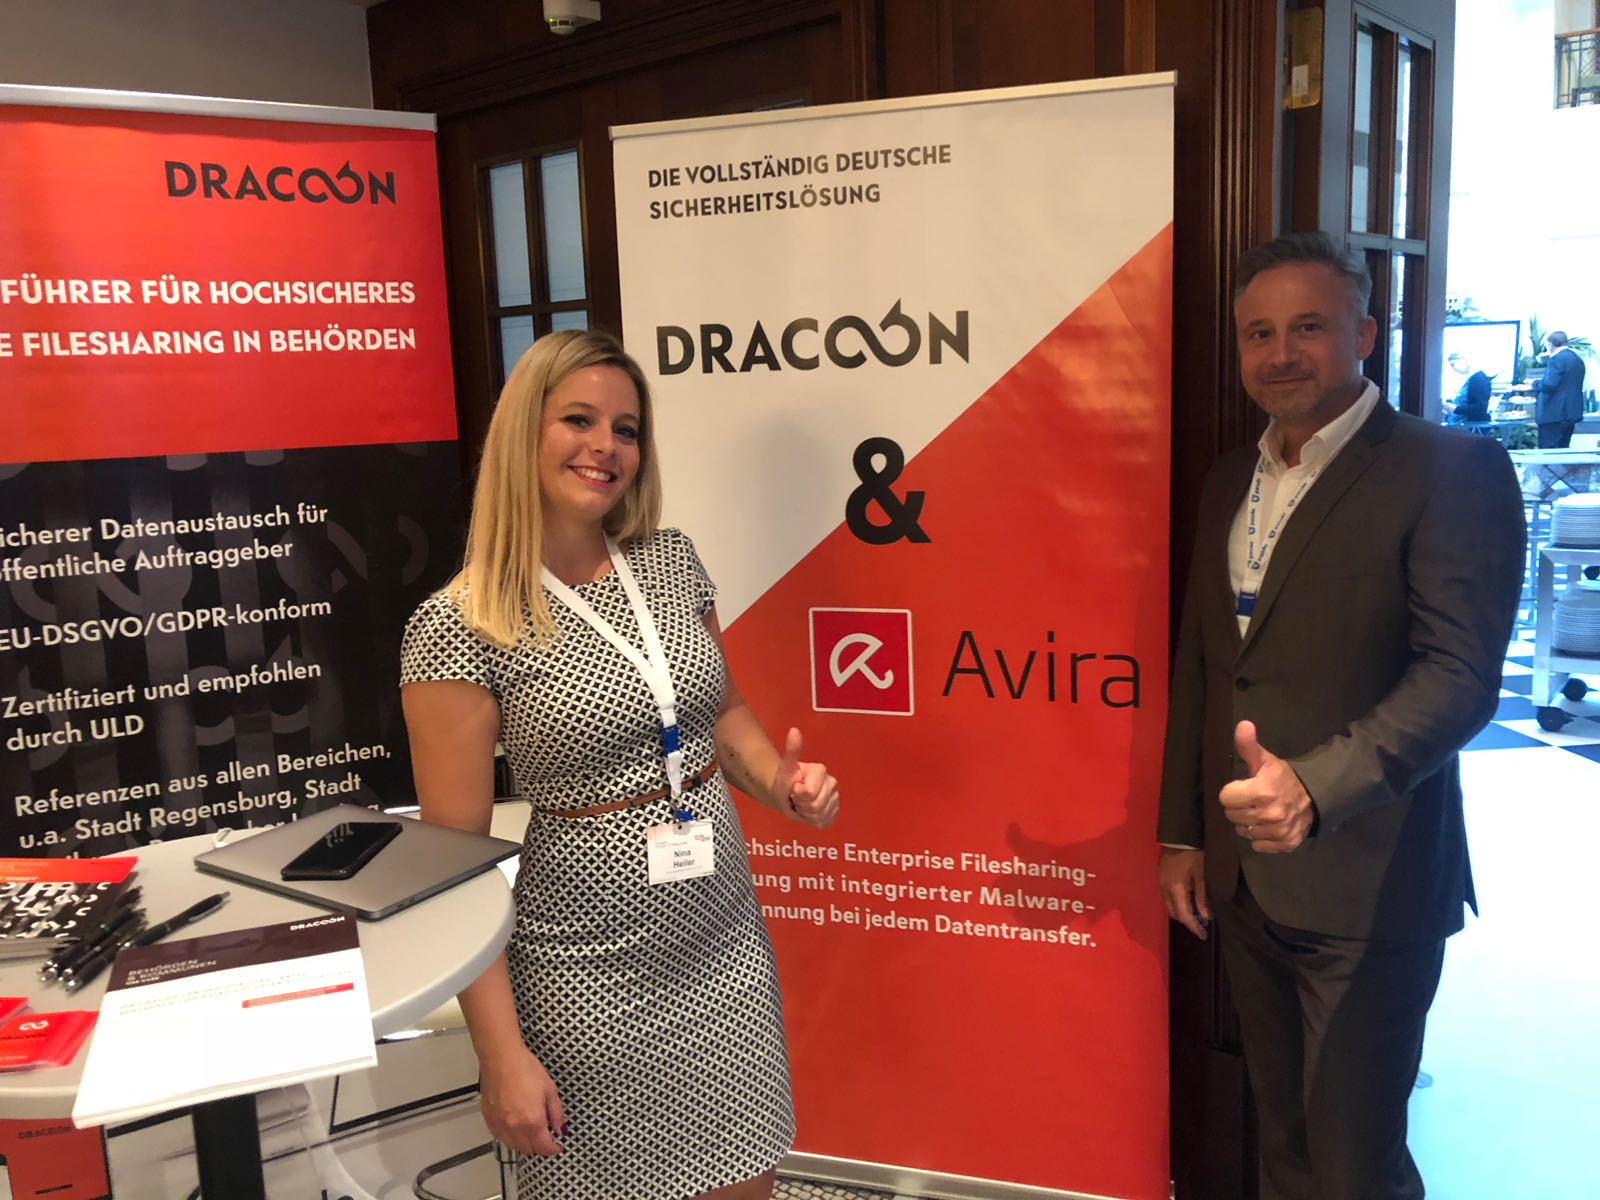 No chance for malware: DRACOON cooperates with Avira